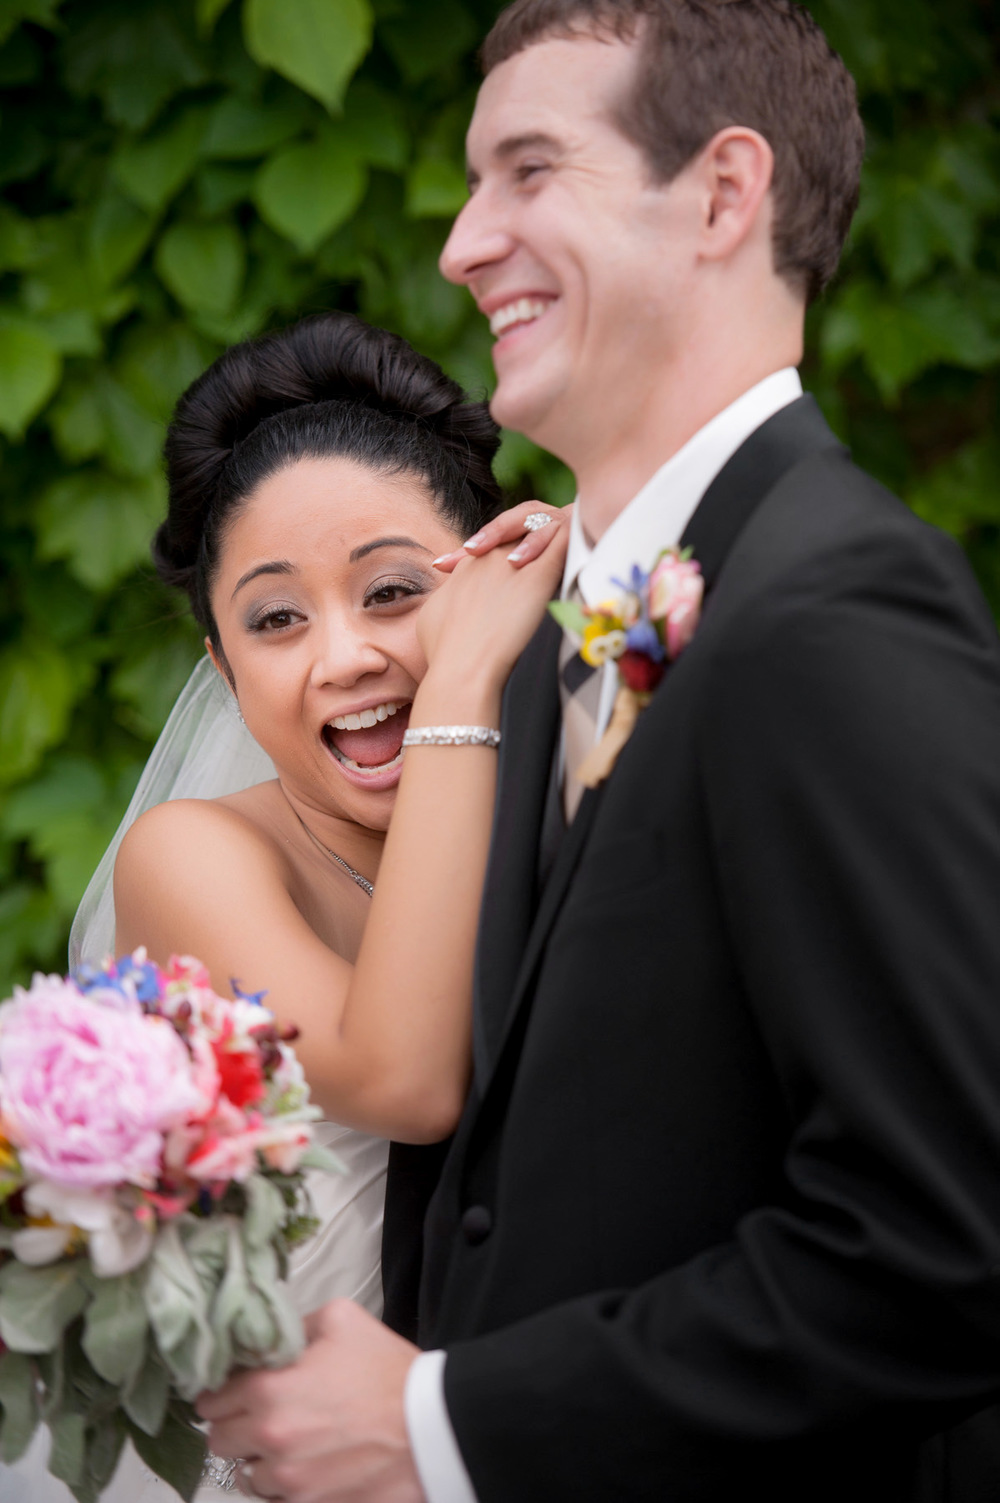 minnesota-wedding-photographers-mark-kegans-933.jpg